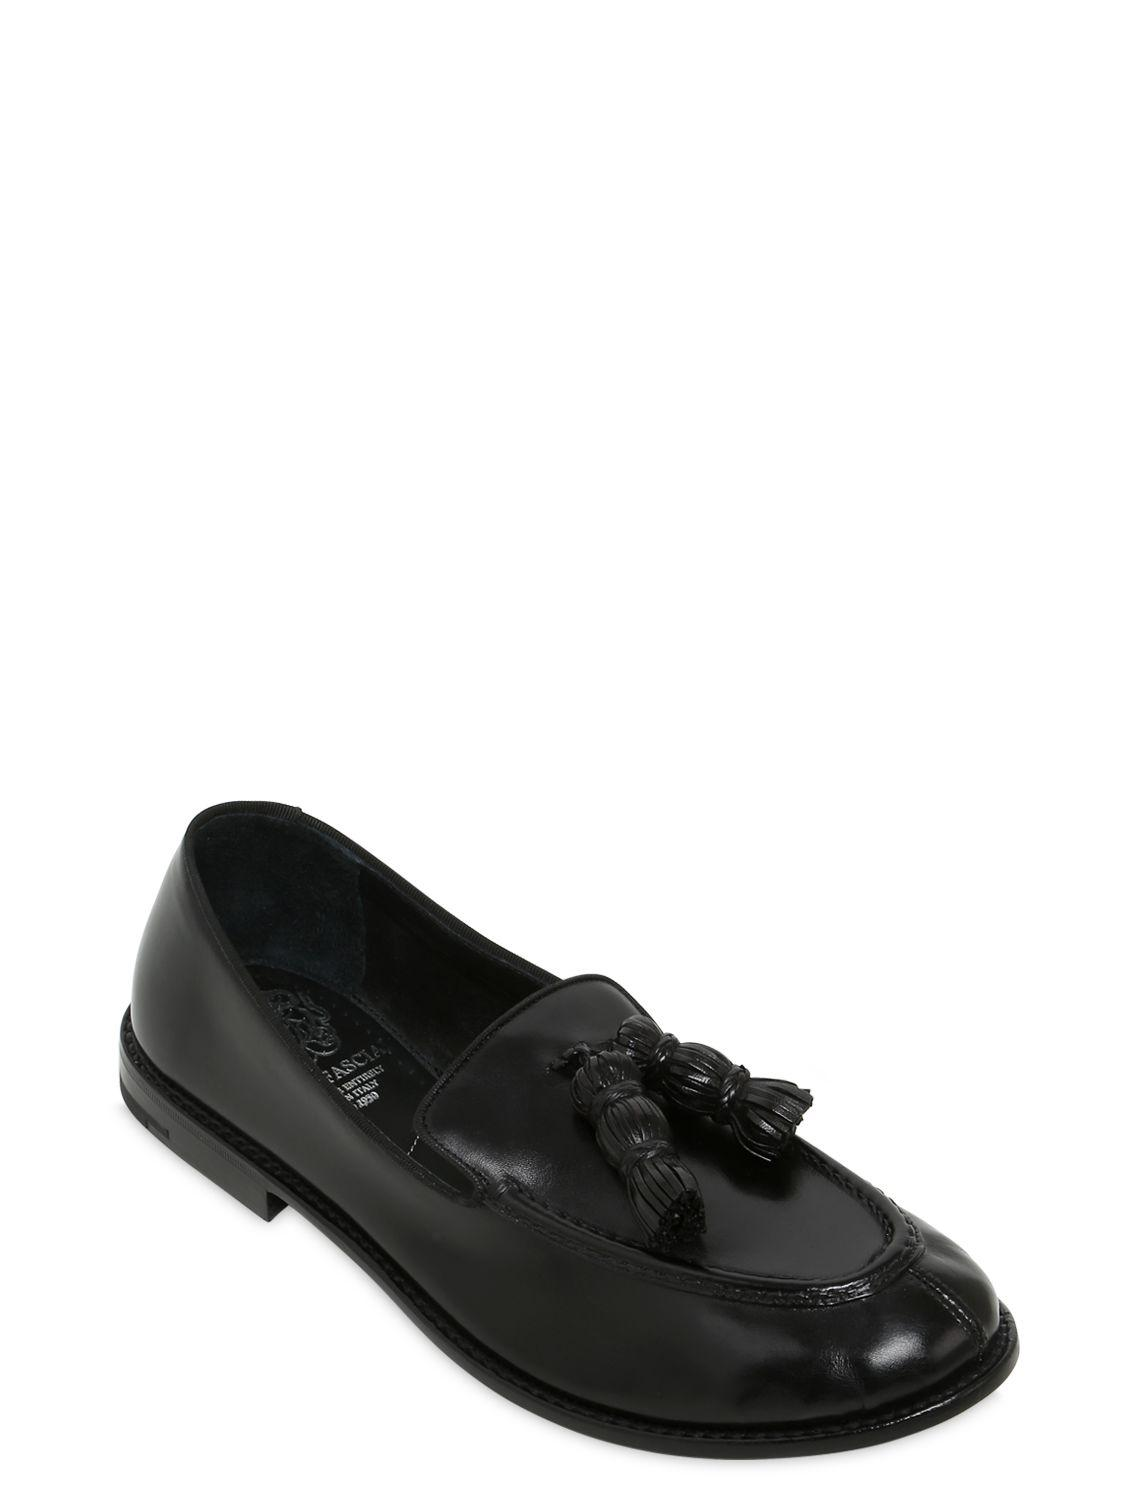 Alberto Fasciani Tasseled Hand-brushed Leather Loafers in Black for Men